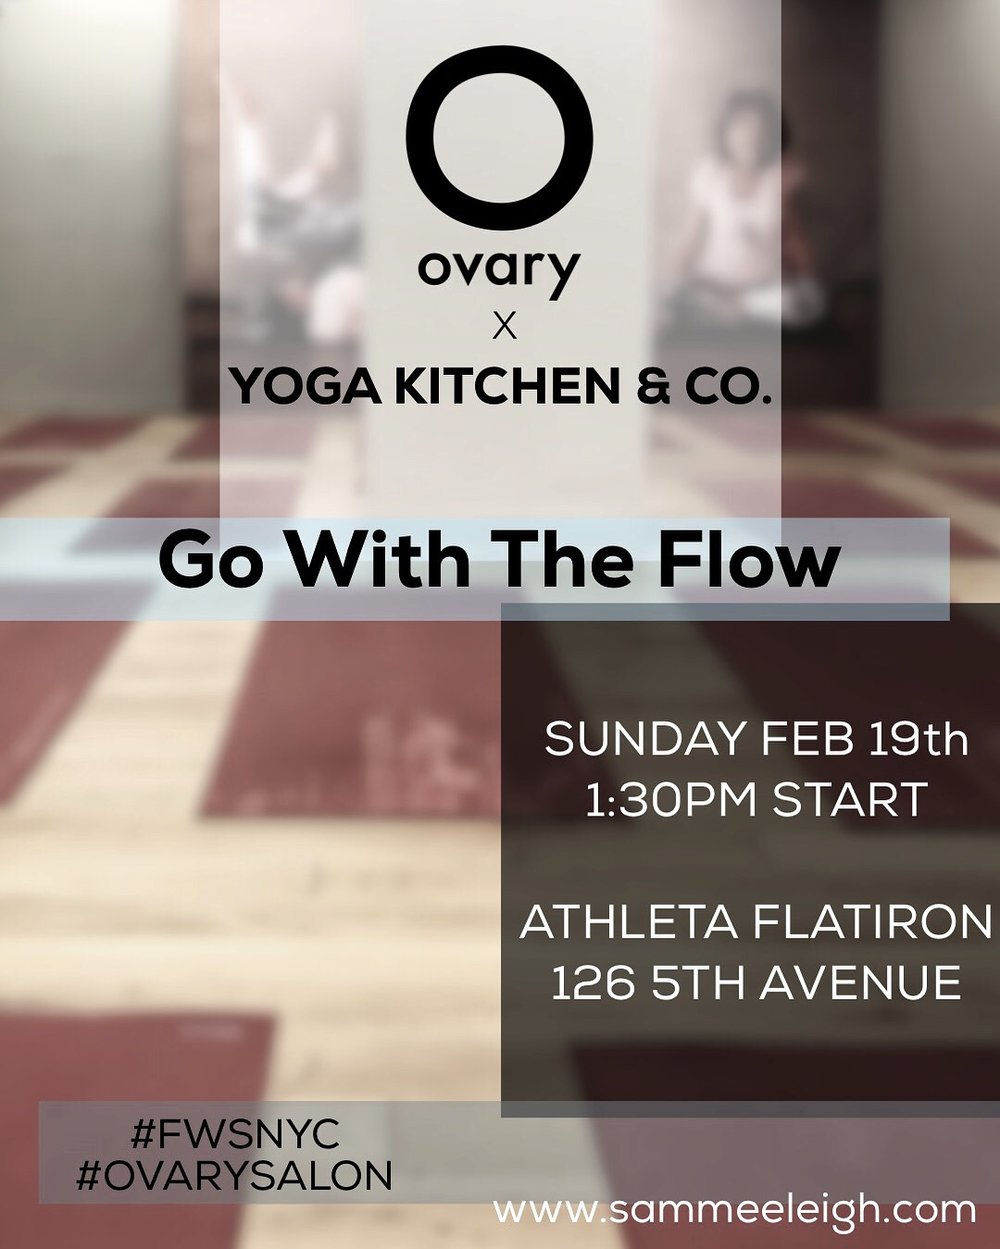 2/19/17 Yoga Kitchen & Co.: GO WITH THE FLOW